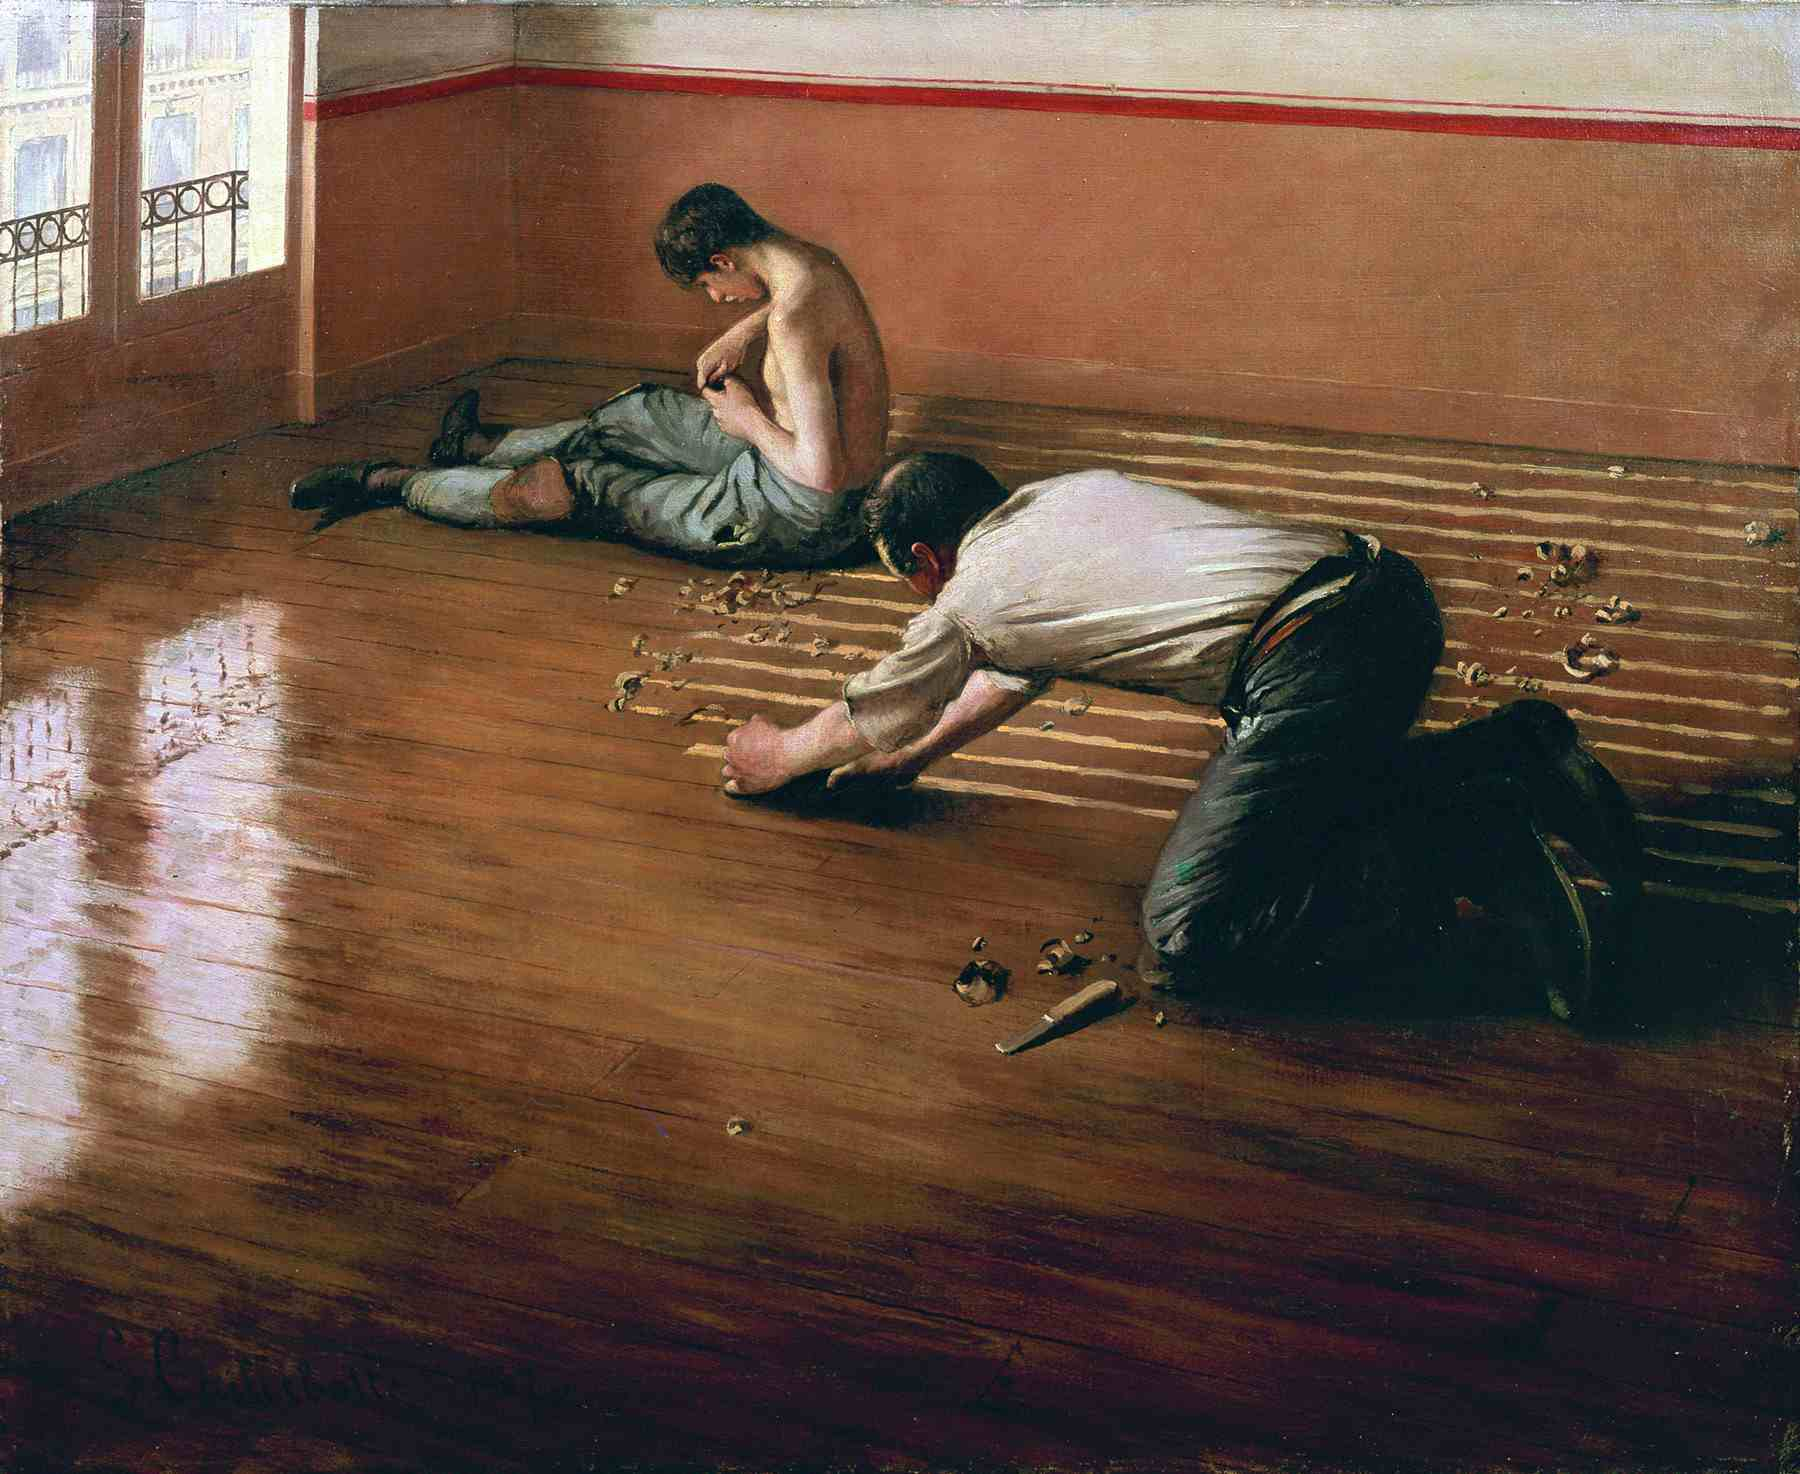 Gustave Caillebotte (French, 1848–1894). The Floor Scrapers, 1876. Oil on canvas. 31 1/2 x 39 3/8 in. (80 x 100 cm).